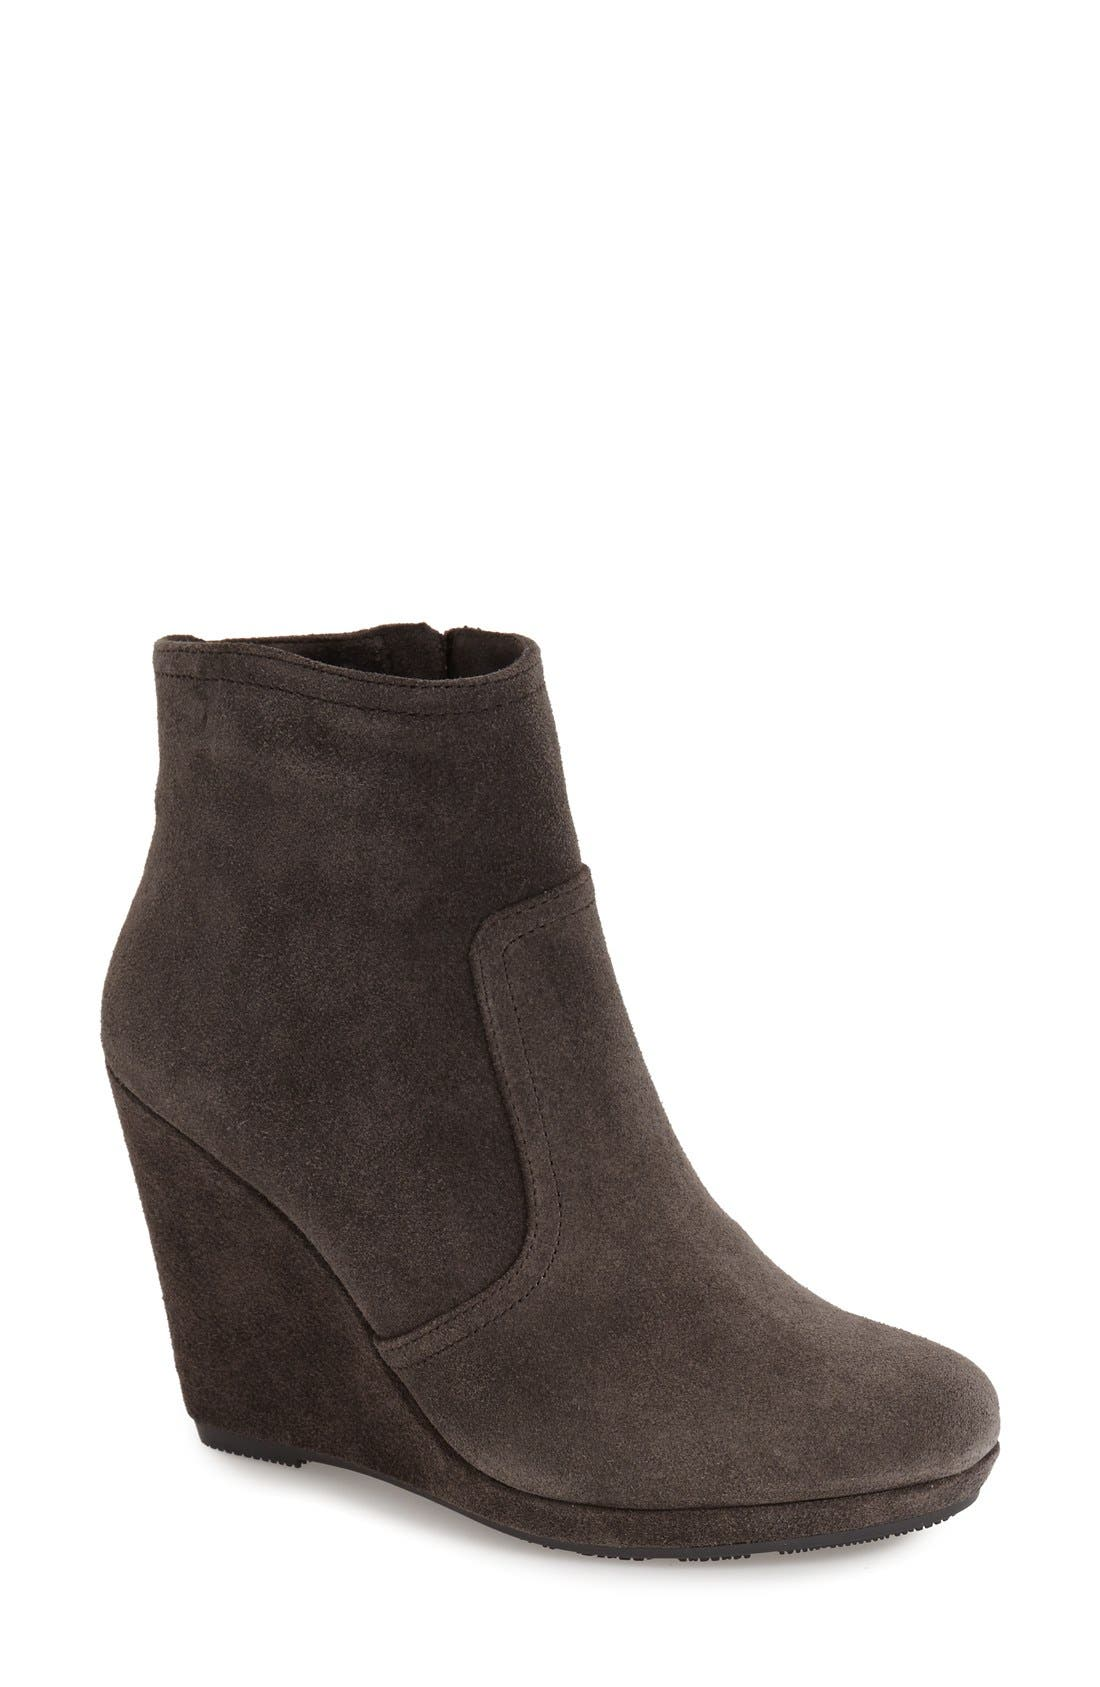 Alternate Image 1 Selected - Vince Camuto 'Abrum' Wedge Bootie (Women)